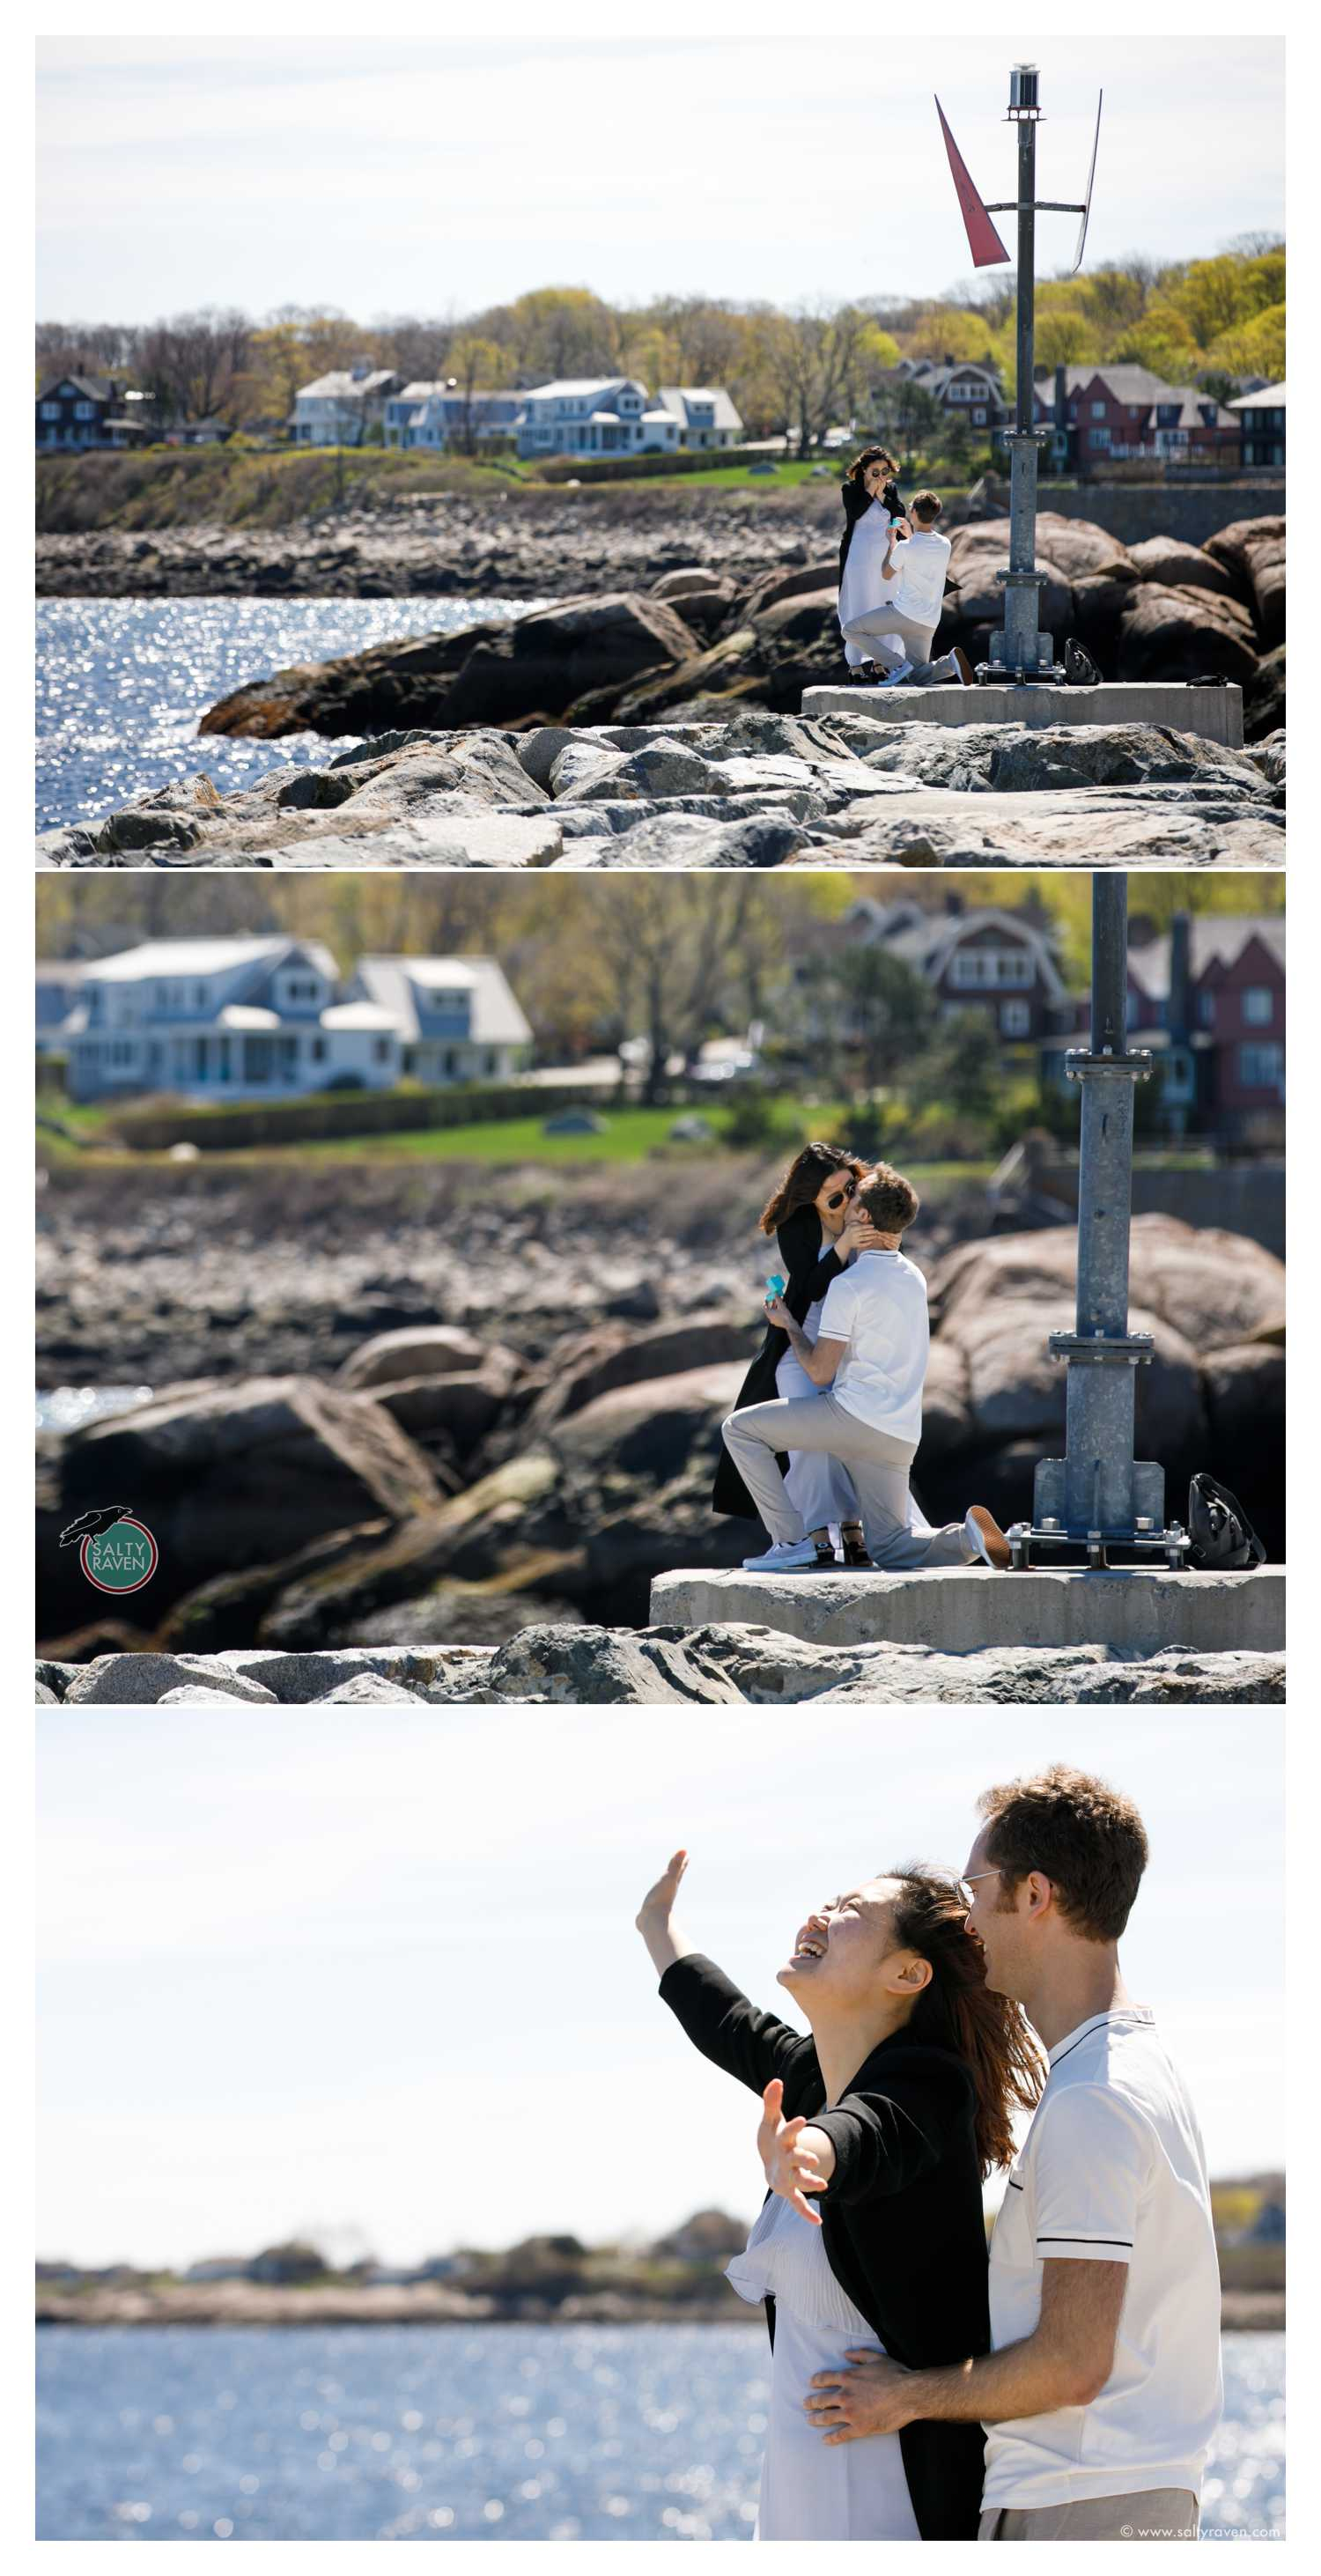 Proposal photography in Rockport, MA where a man proposed to a woman by getting down on one knee with a ring. She is surprised and says yes!